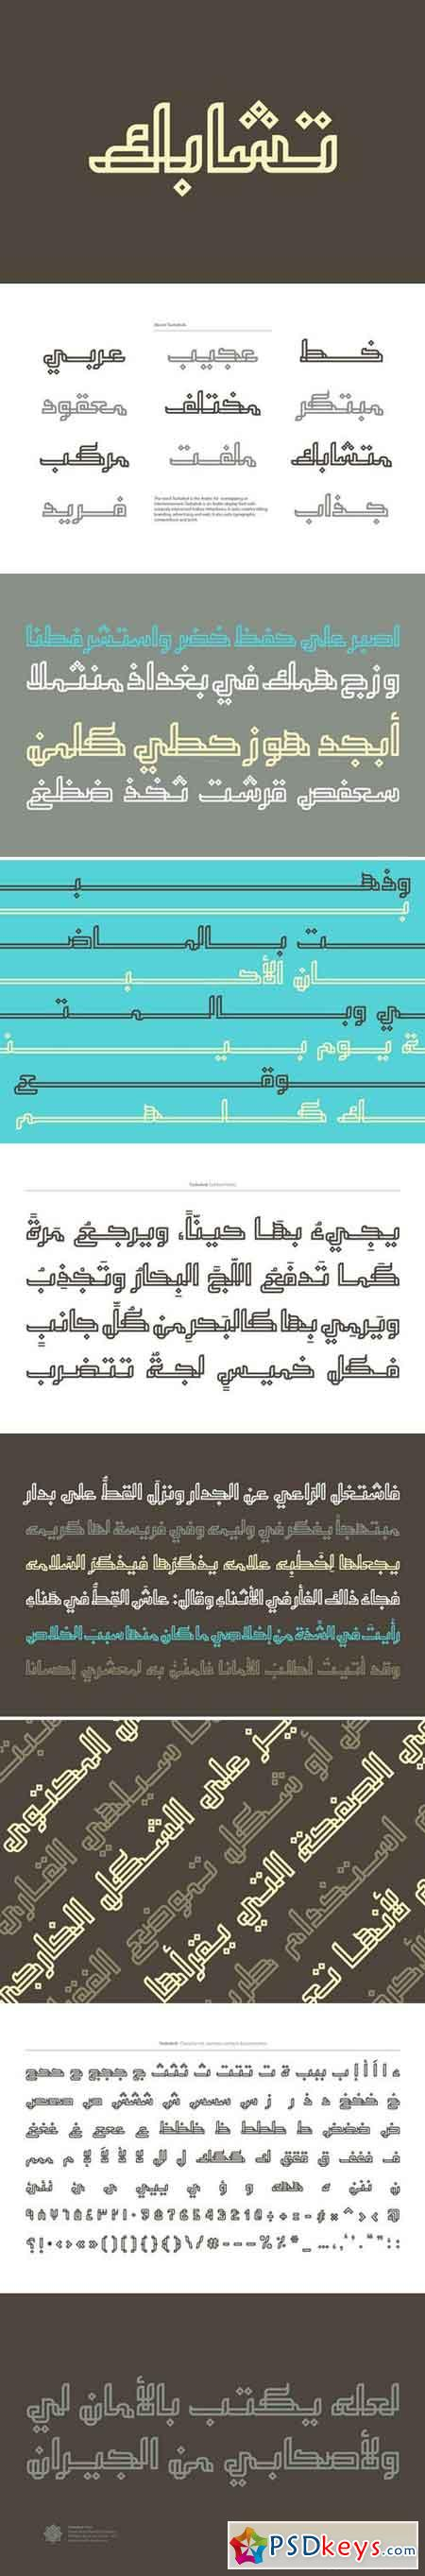 Arabic » Free Download Photoshop Vector Stock image Via Torrent